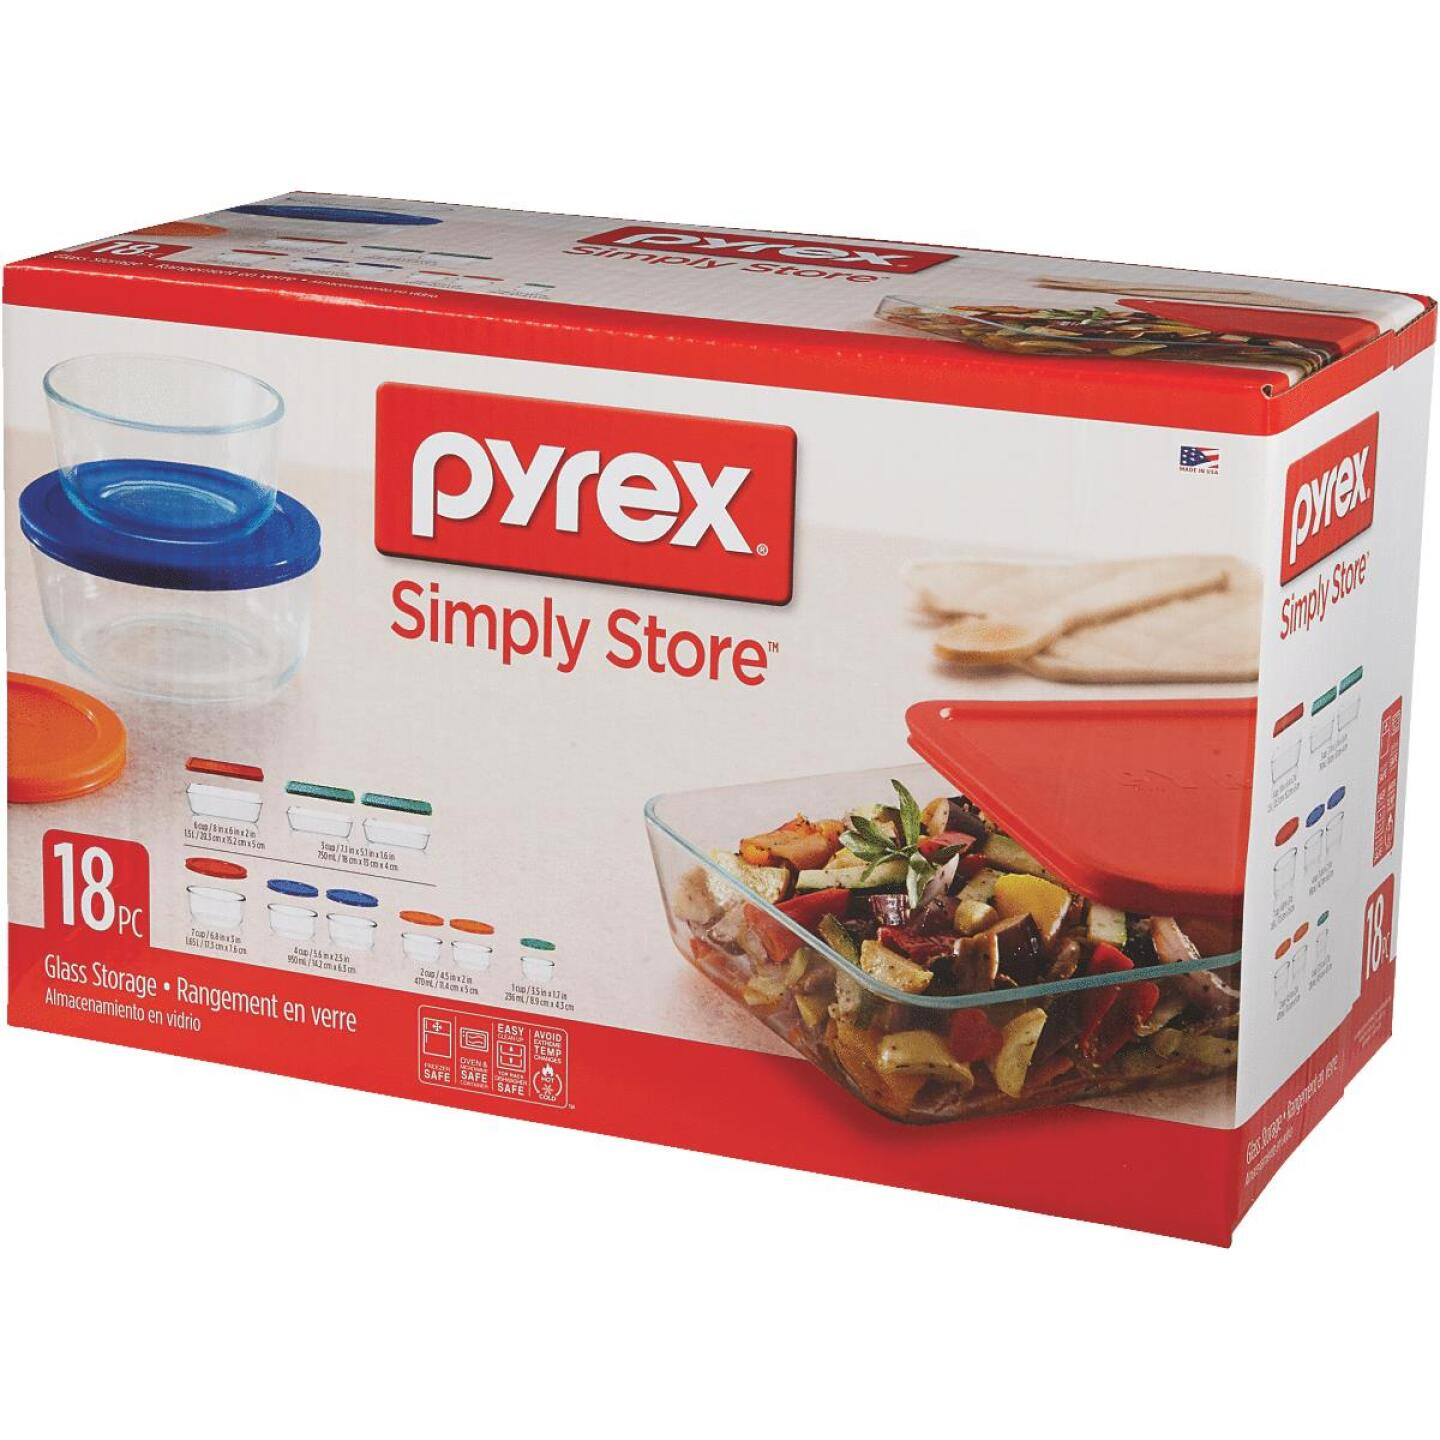 Pyrex Simply Store Glass Storage Container Set with Lids (18-Piece) Image 2